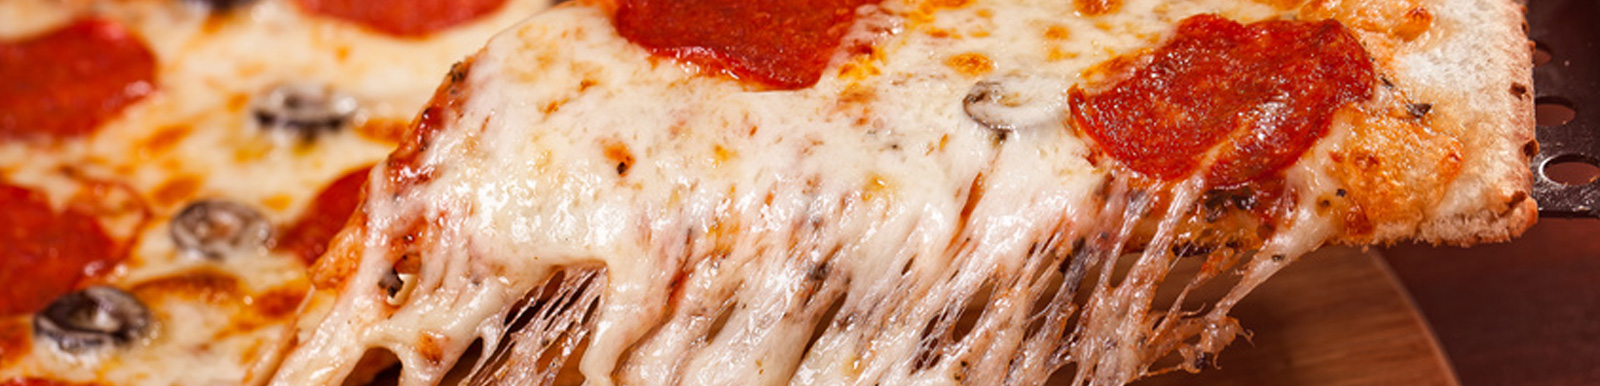 pizza close up